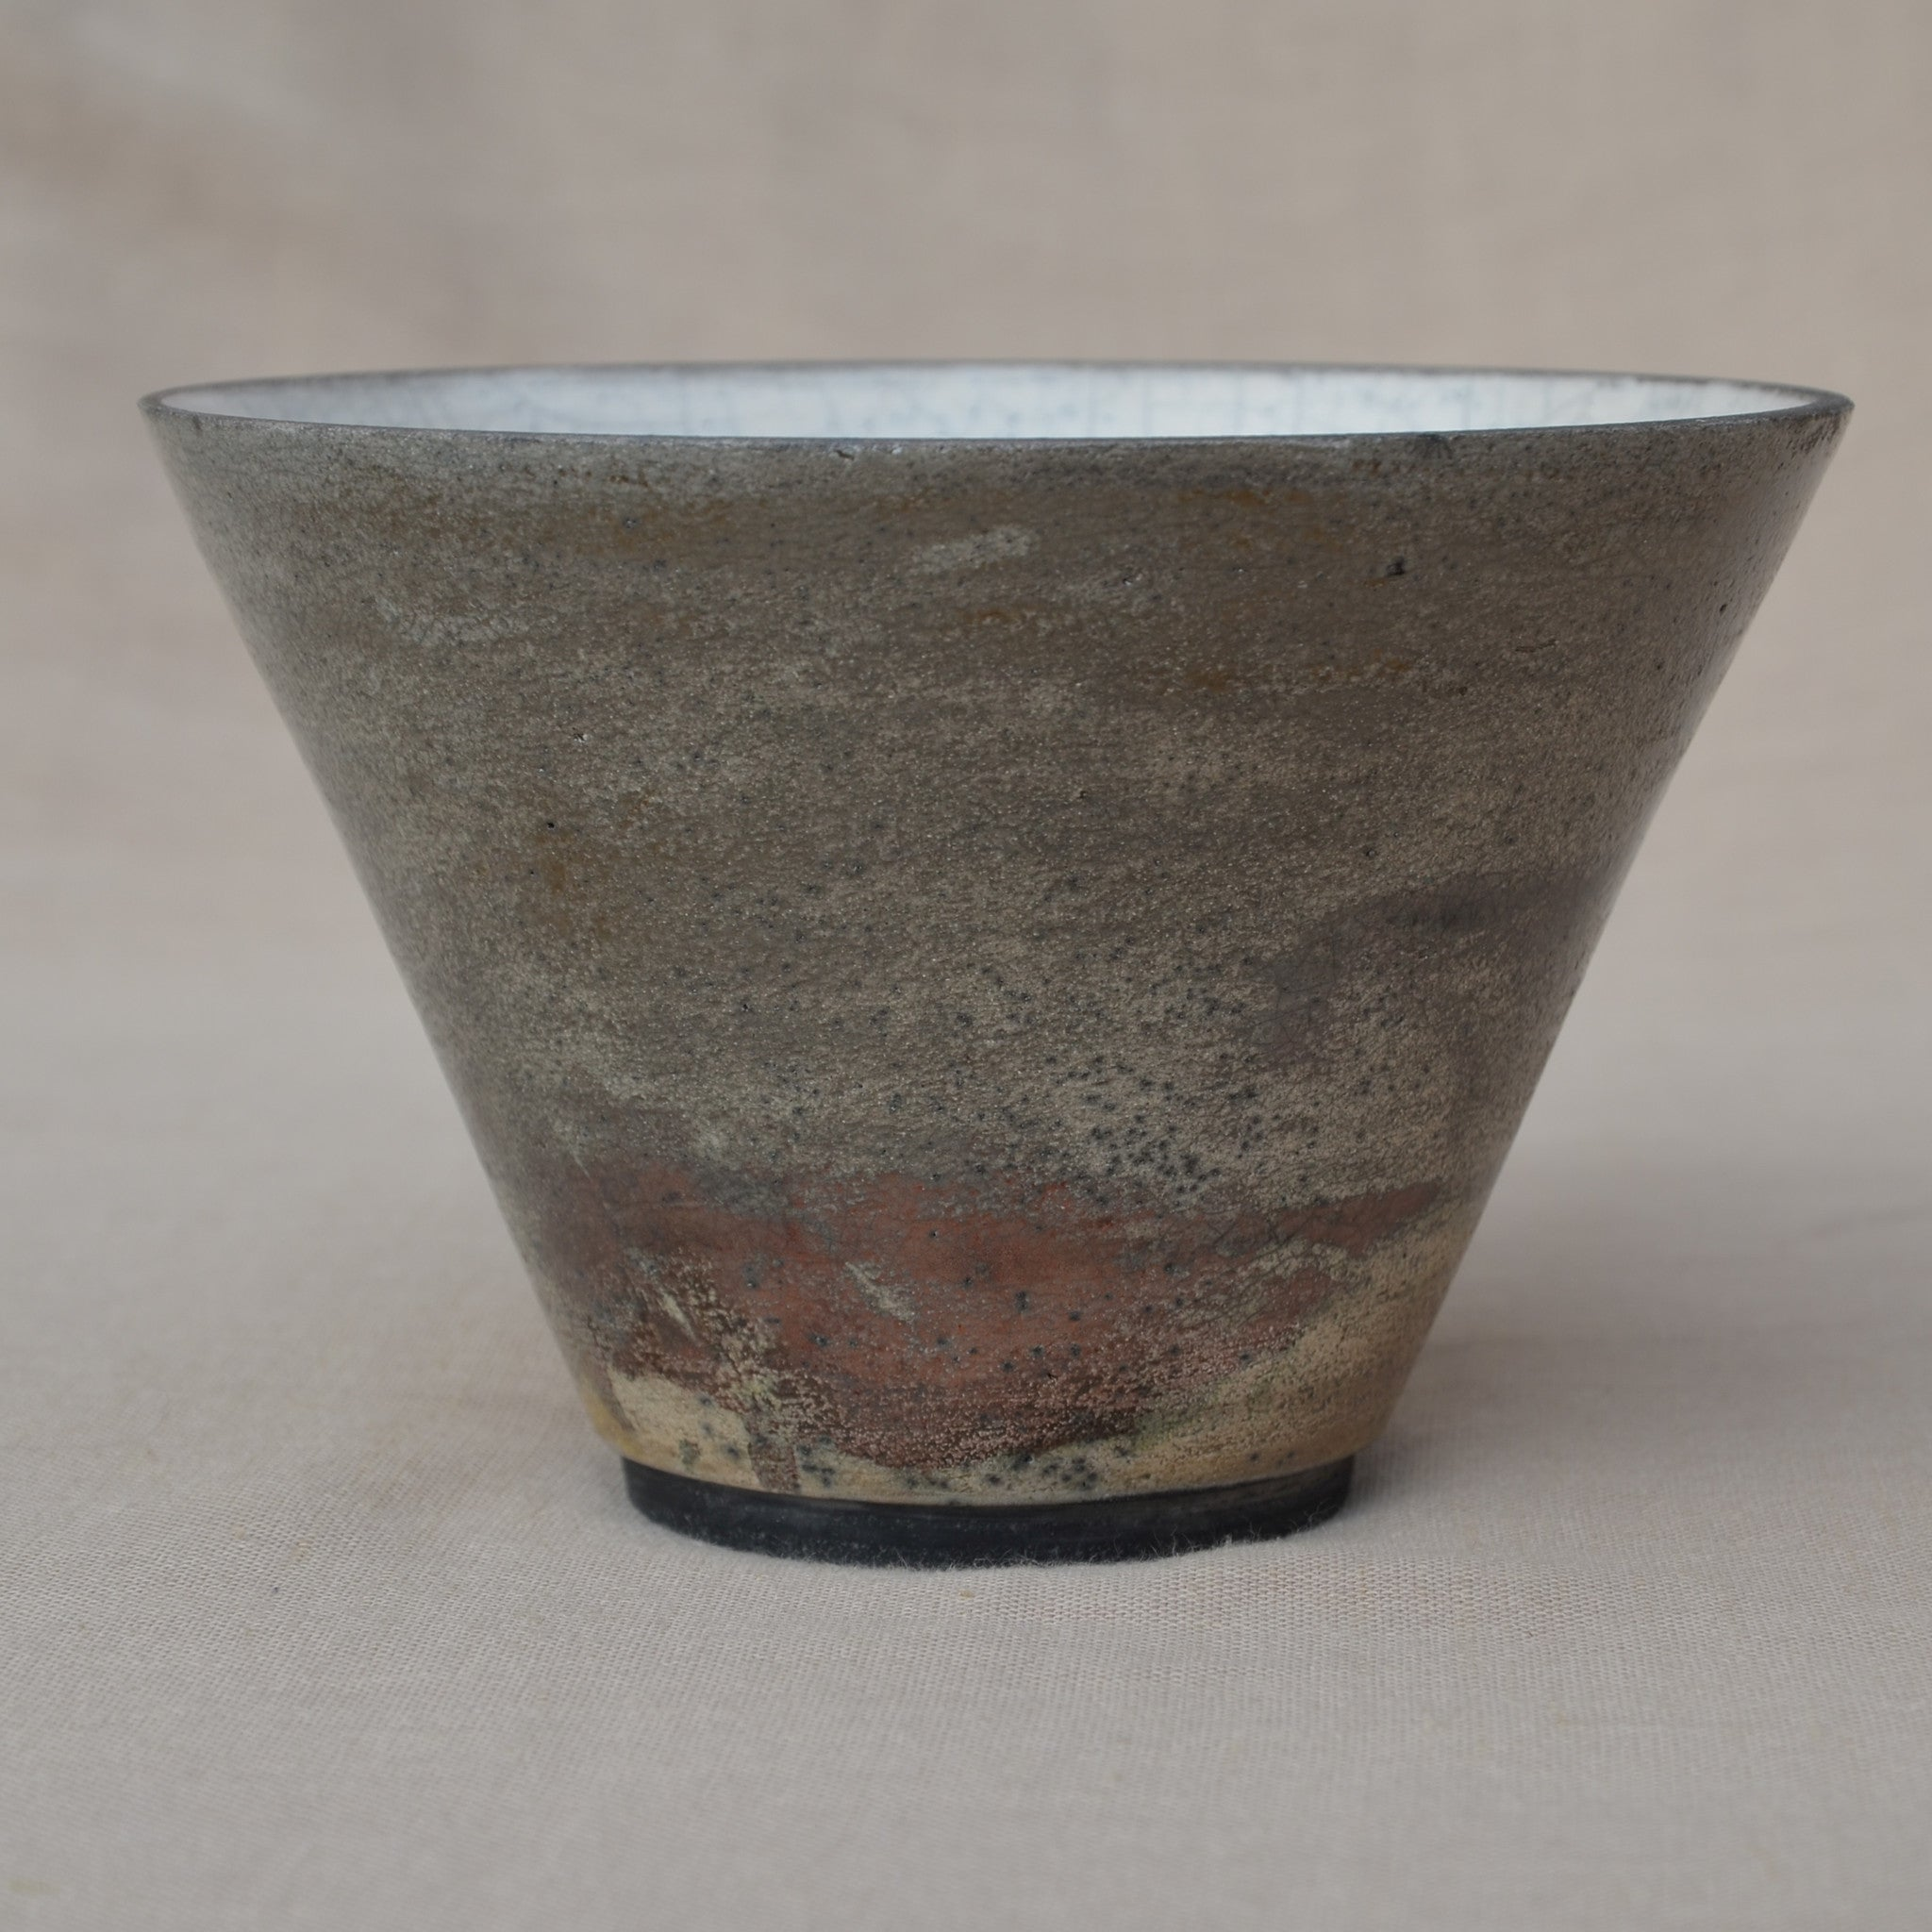 Large conical Raku bowl